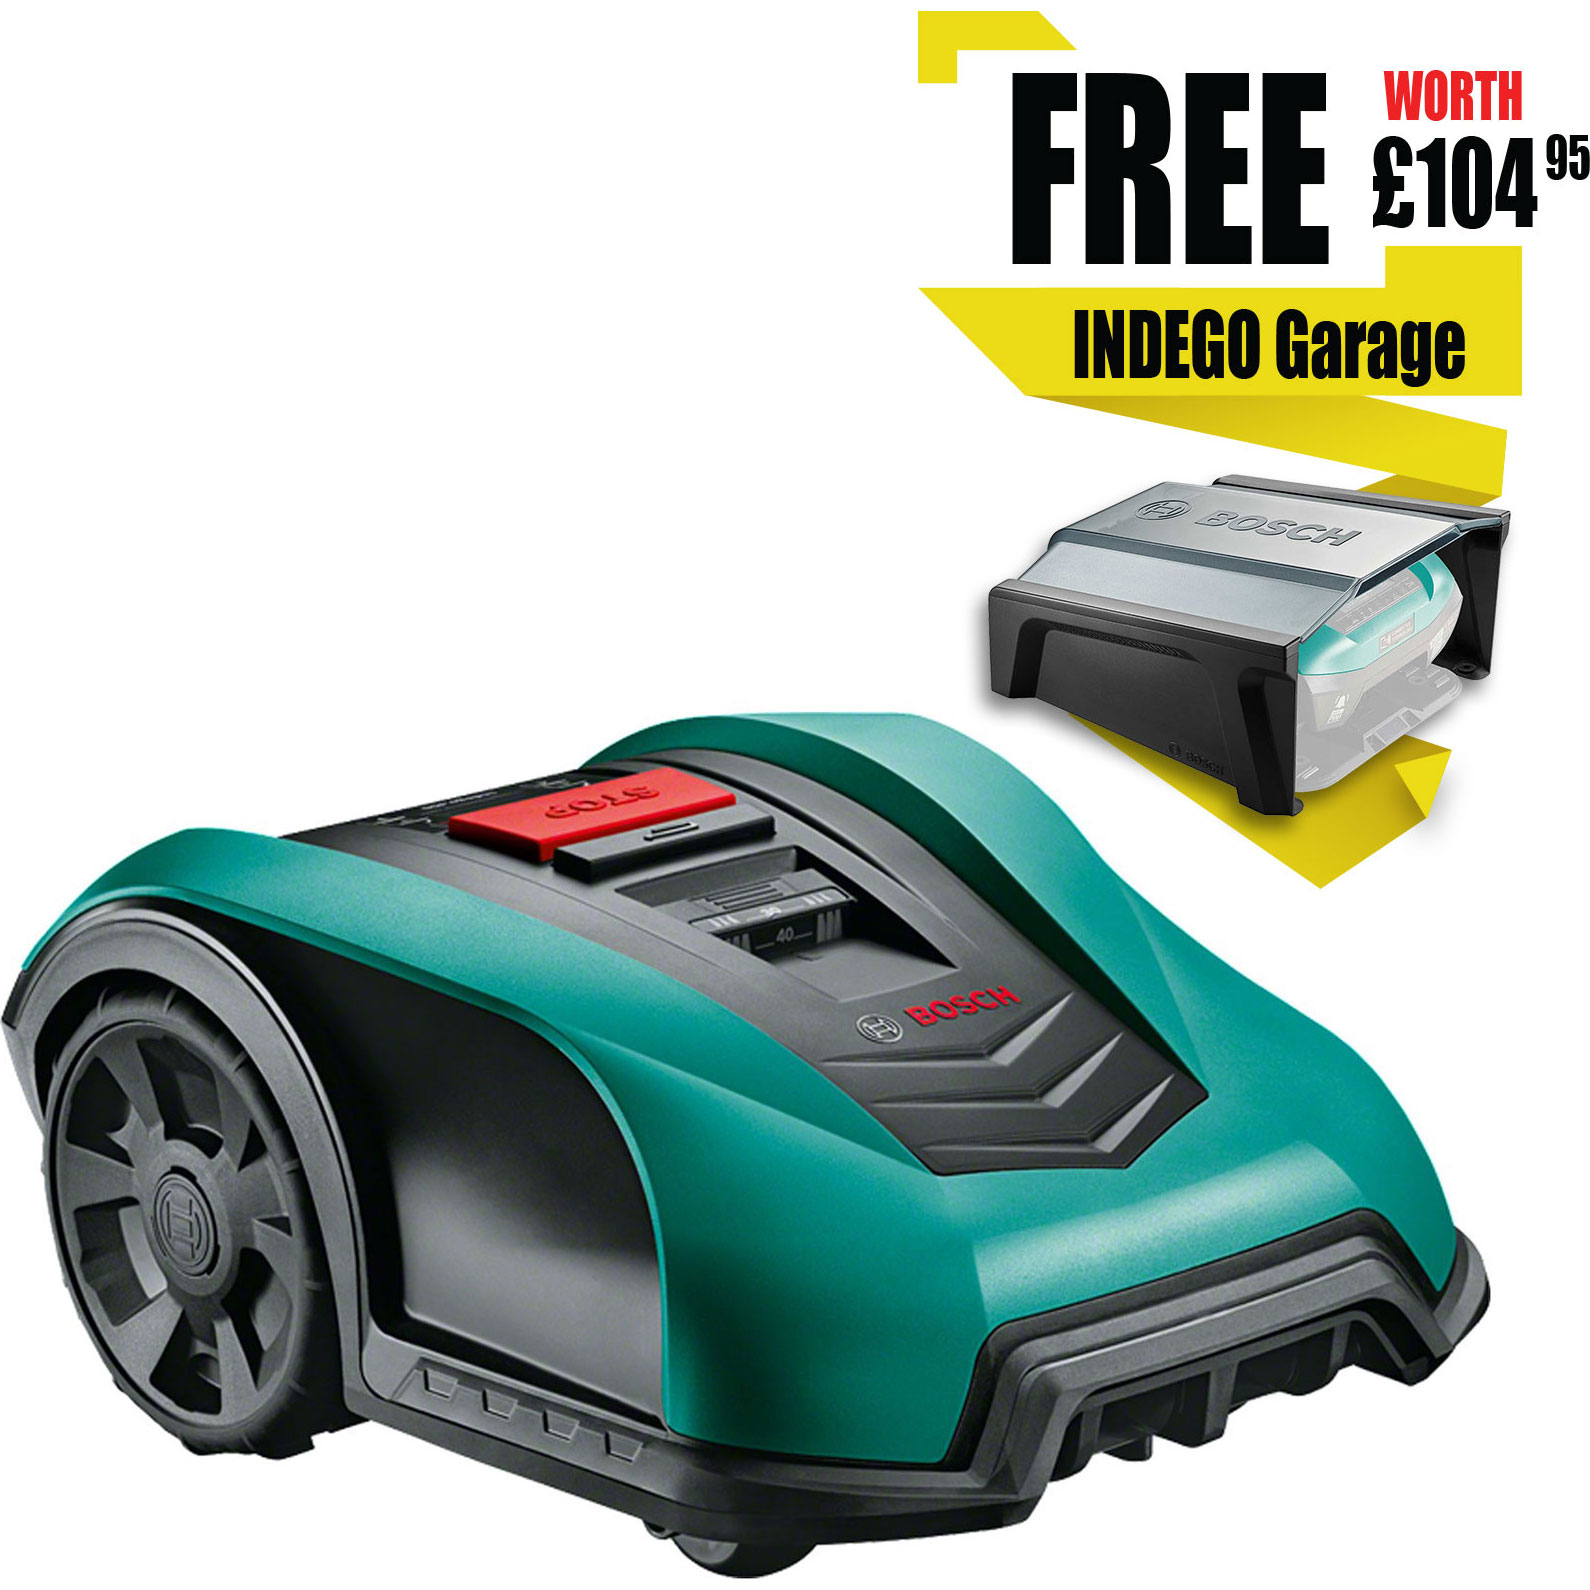 Image of Bosch INDEGO 400 18v Cordless Robotic Lawnmower 190mm 1 x 2.5ah Integrated Li-ion Charger